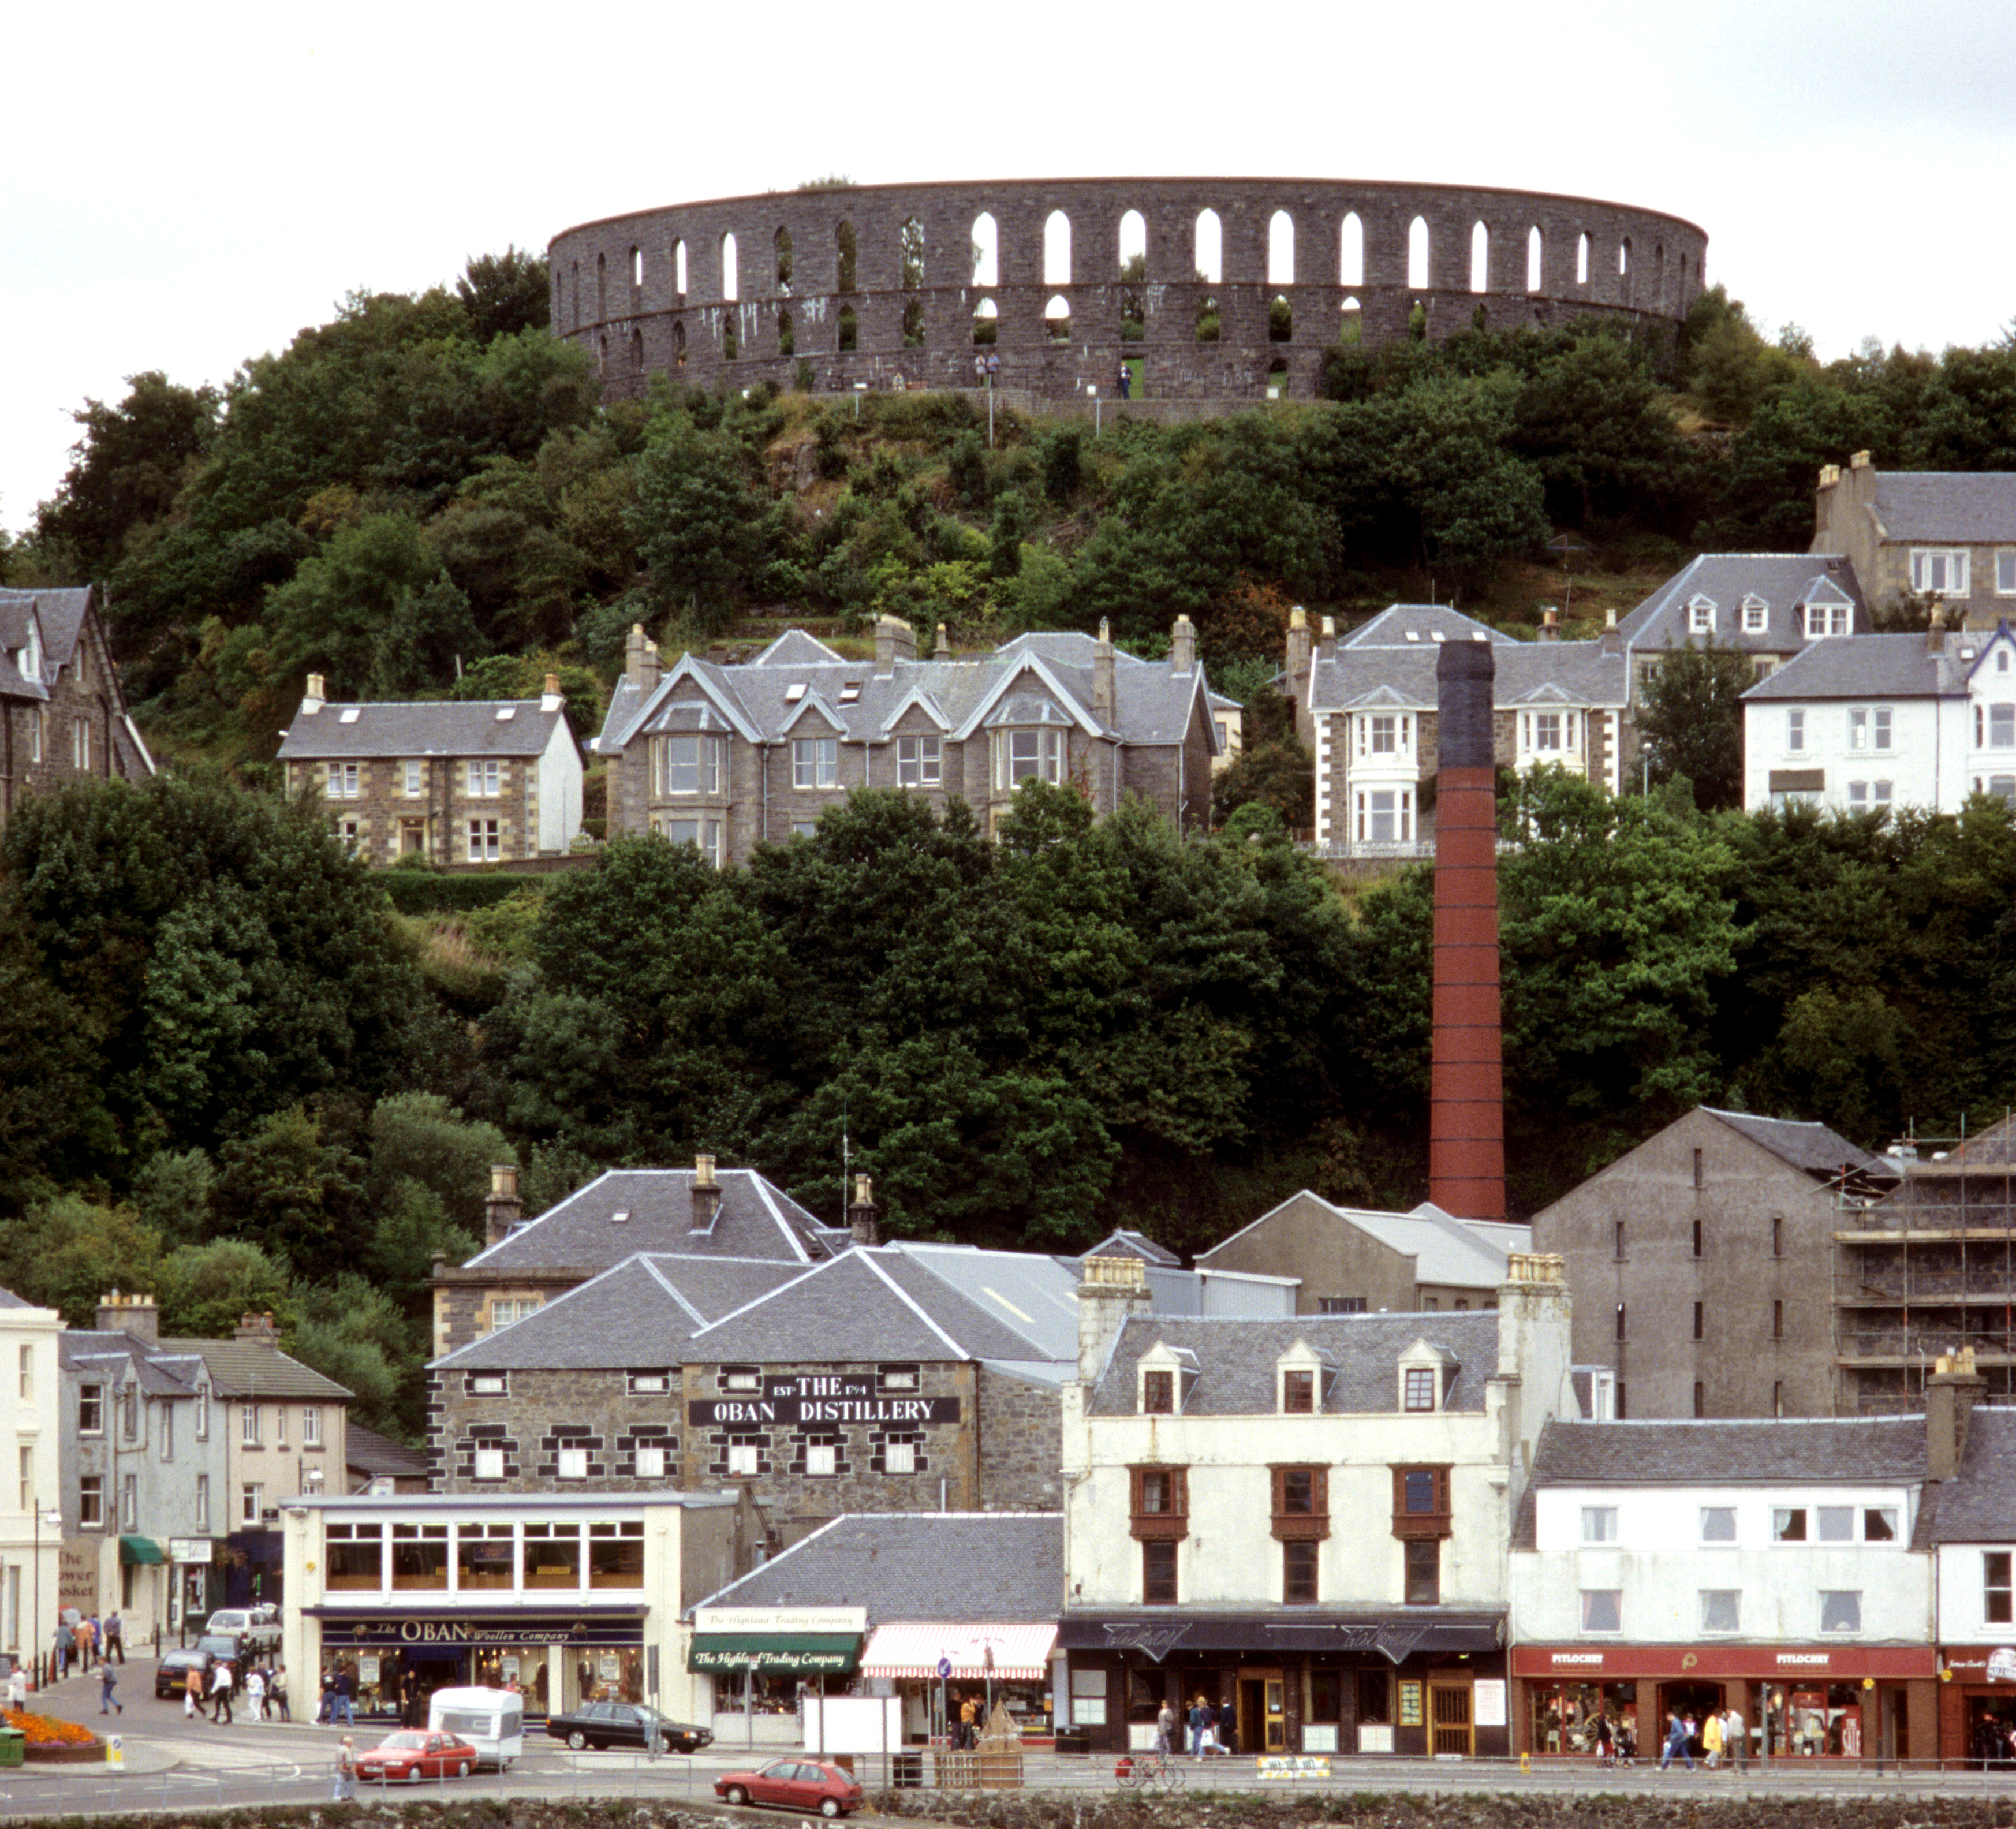 oban chatrooms - private room for $51 cosy apartment with easy access to the town center 2 minute walk from local tesco's, seafront pubs and restaurants as well as ferry port/ train a.